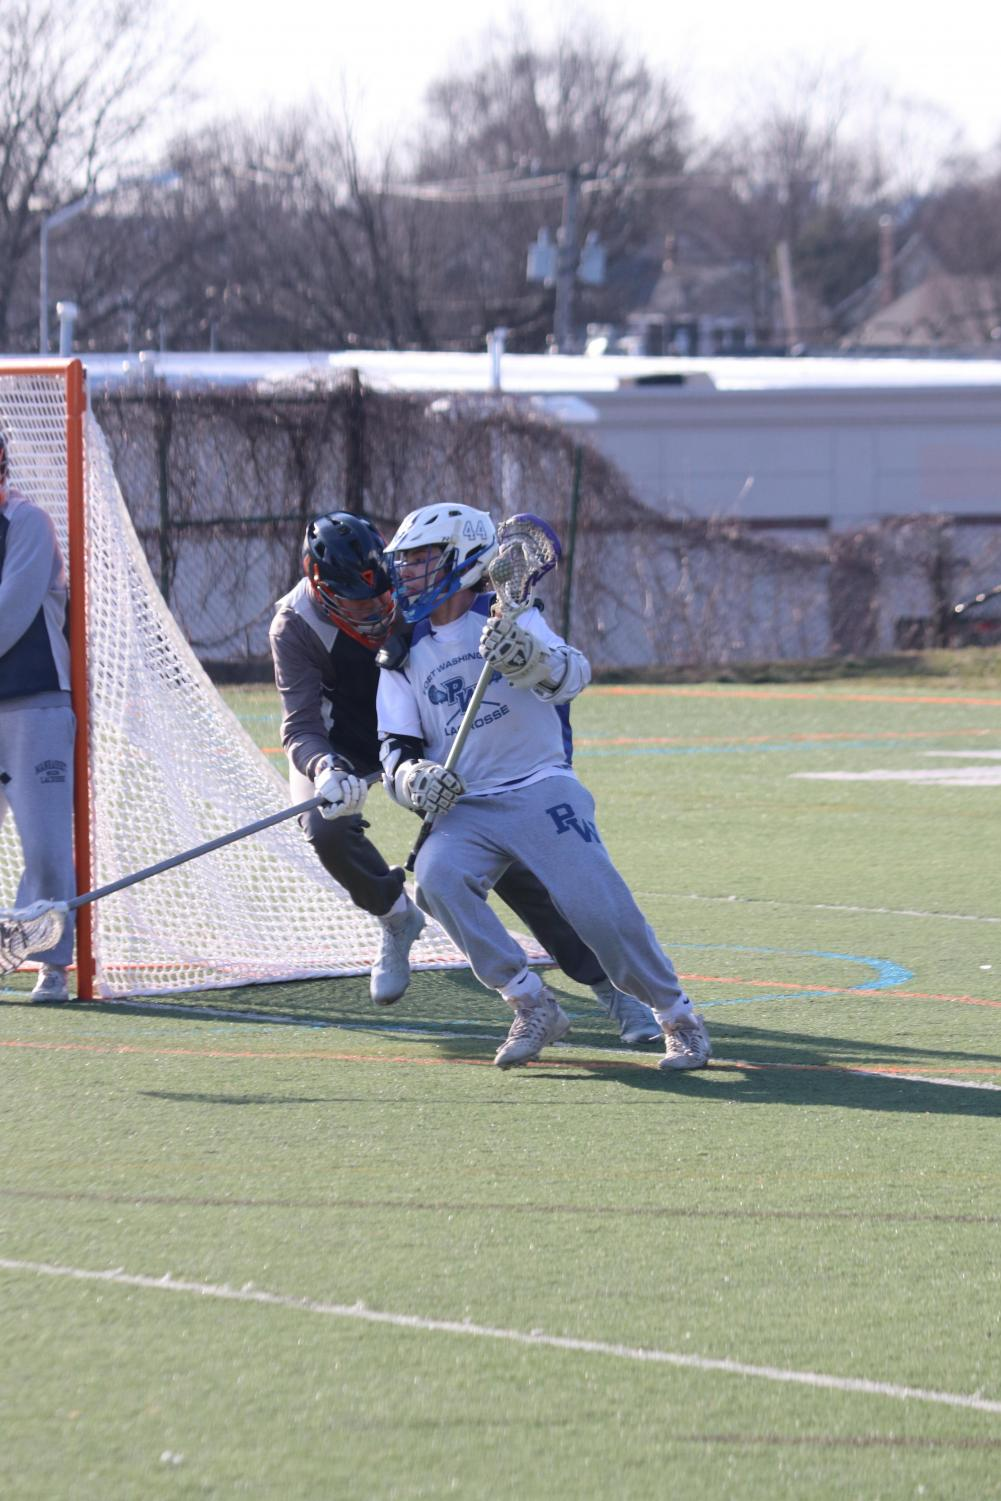 Senior John Athanasian looks to beat a defender around the net during a home game on April 12 against Kellenberg.  The Vikings went on to lose the match by a score of 12-16.